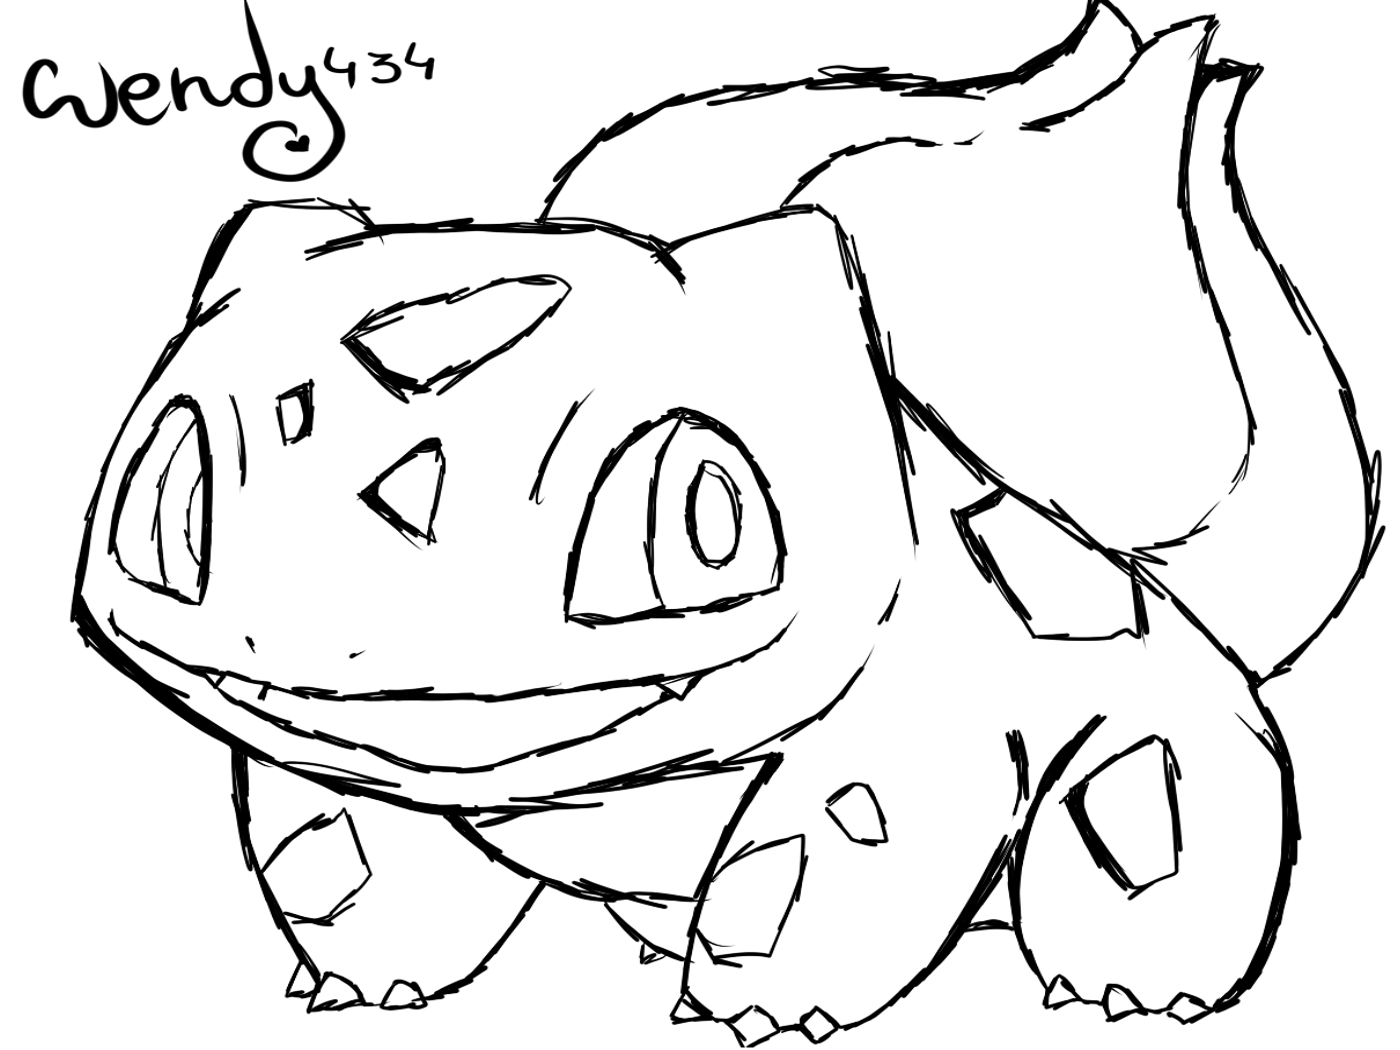 bulbasaur coloring page - bulbasaur sketch templates